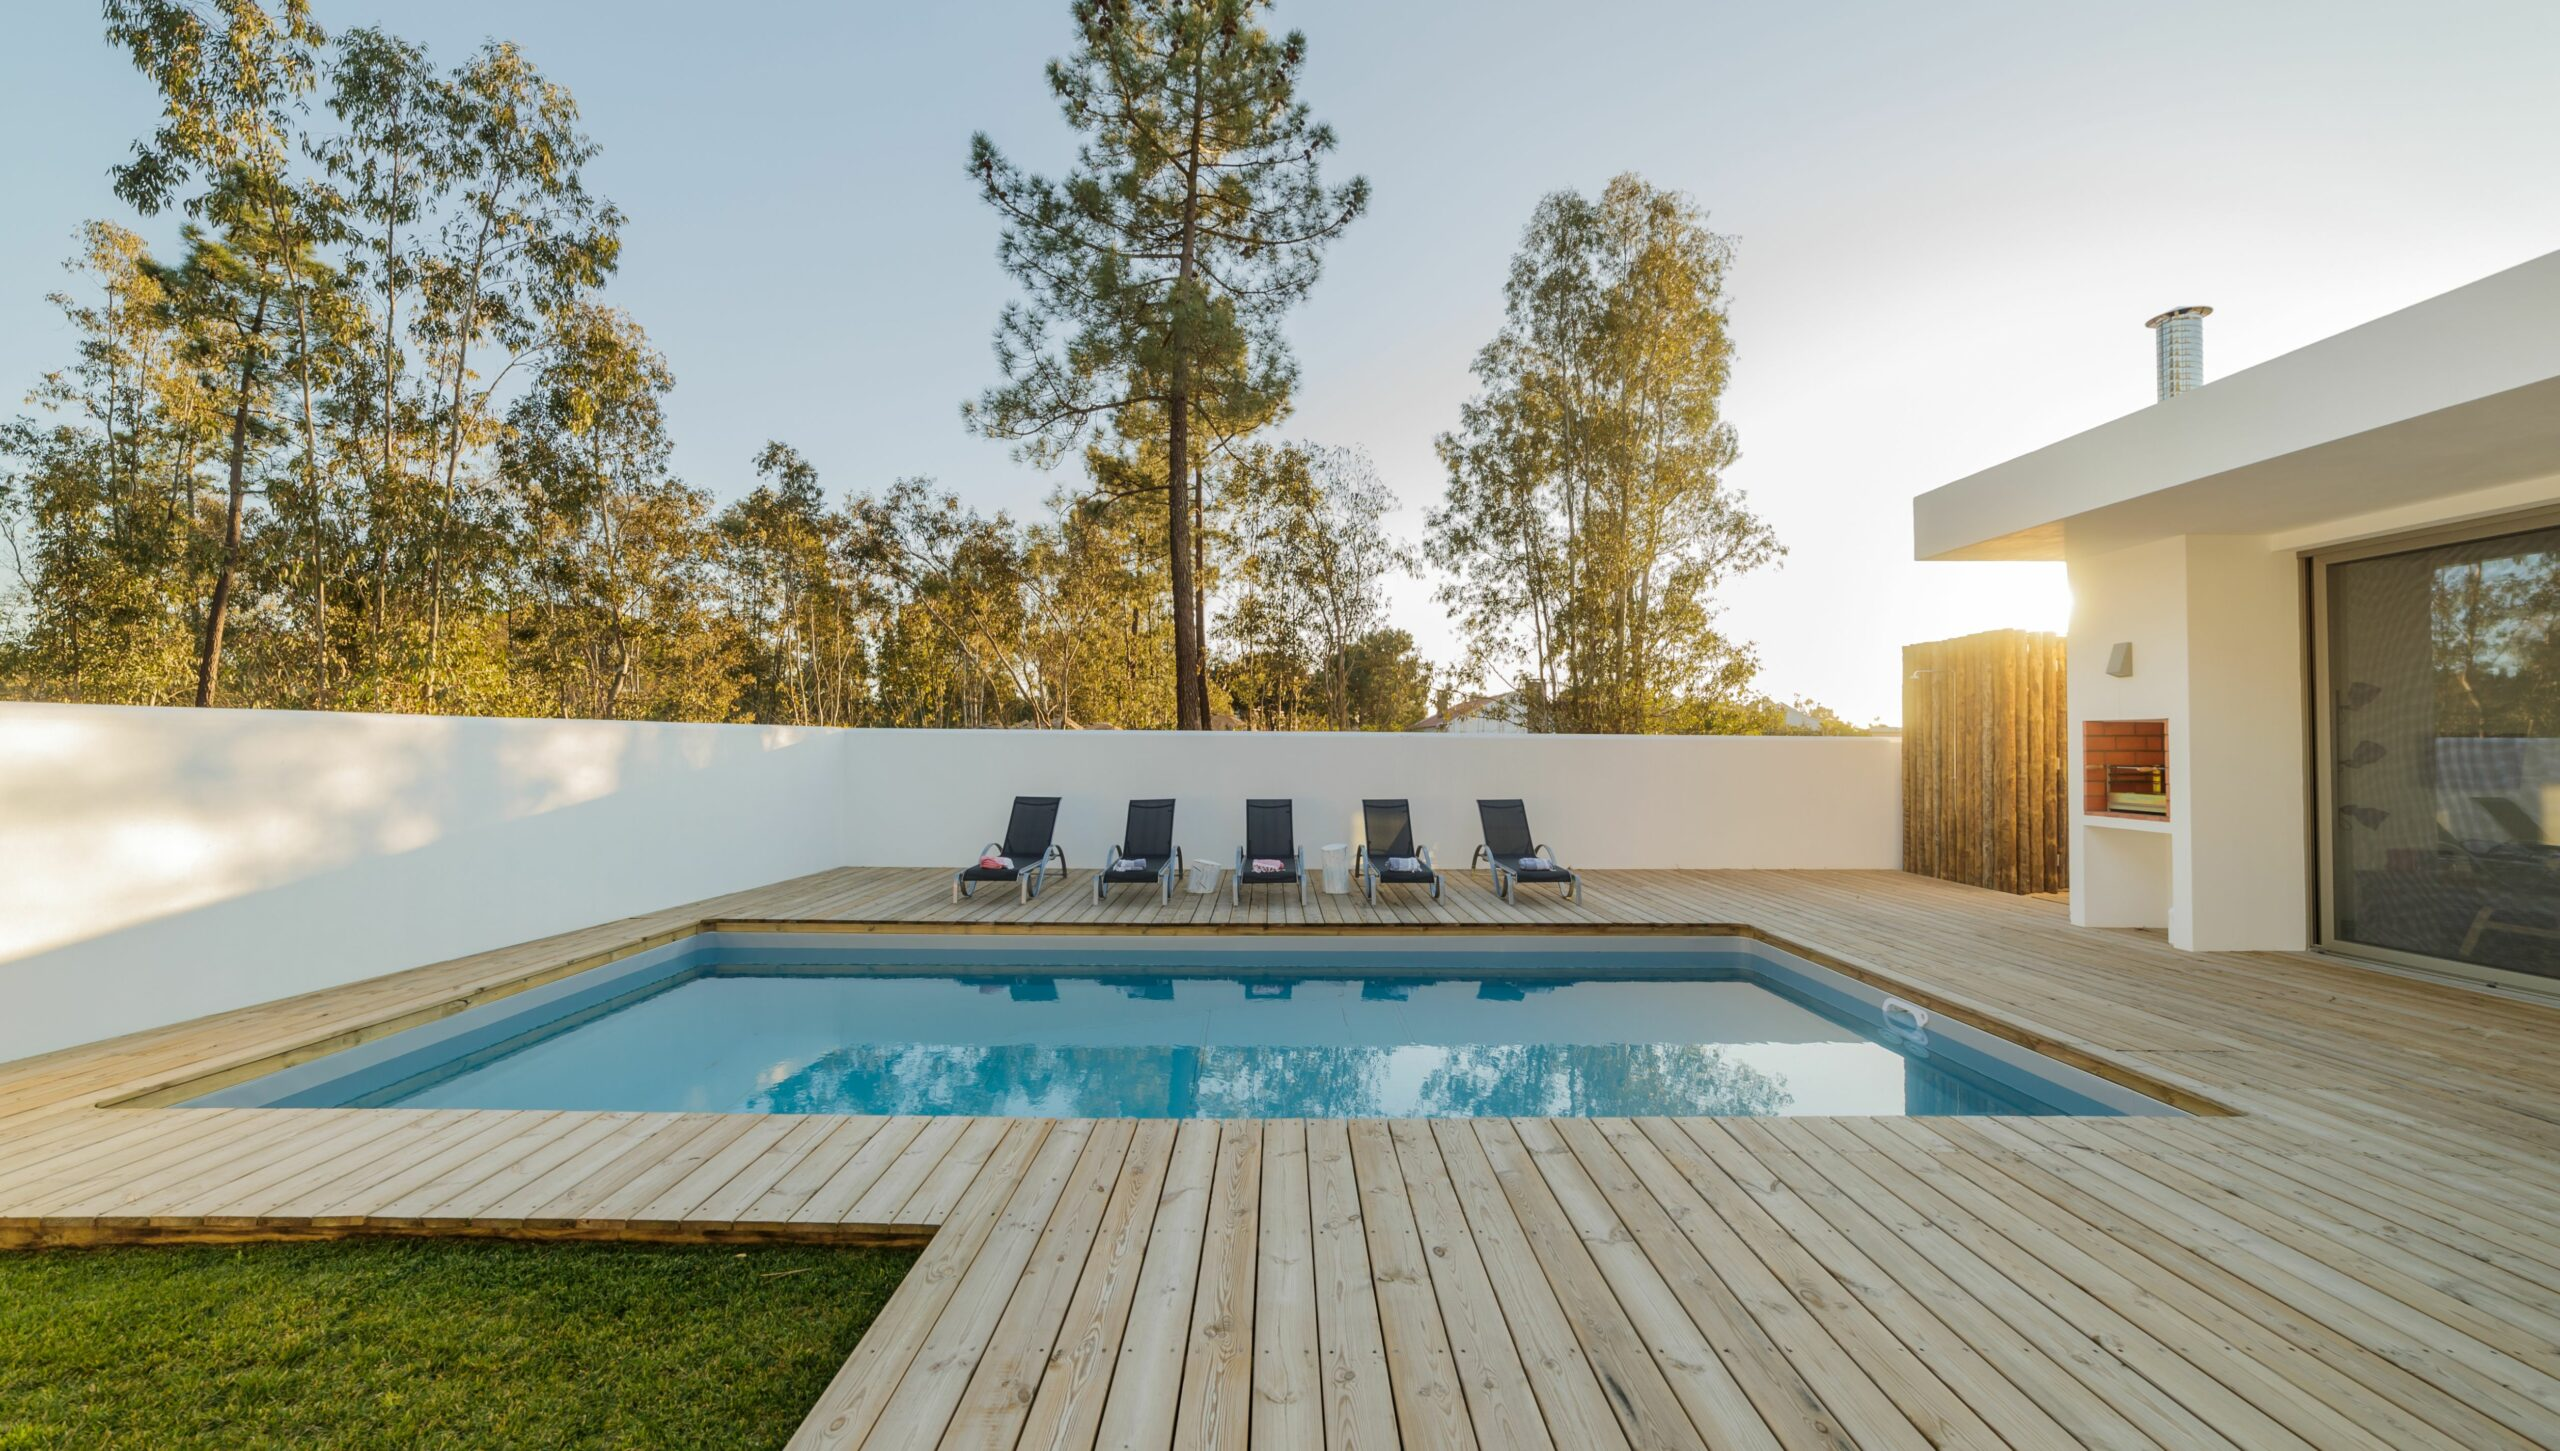 Wooden Decks for Inground Swimming Pools: Cost, Types, and More - pool ideas off deck